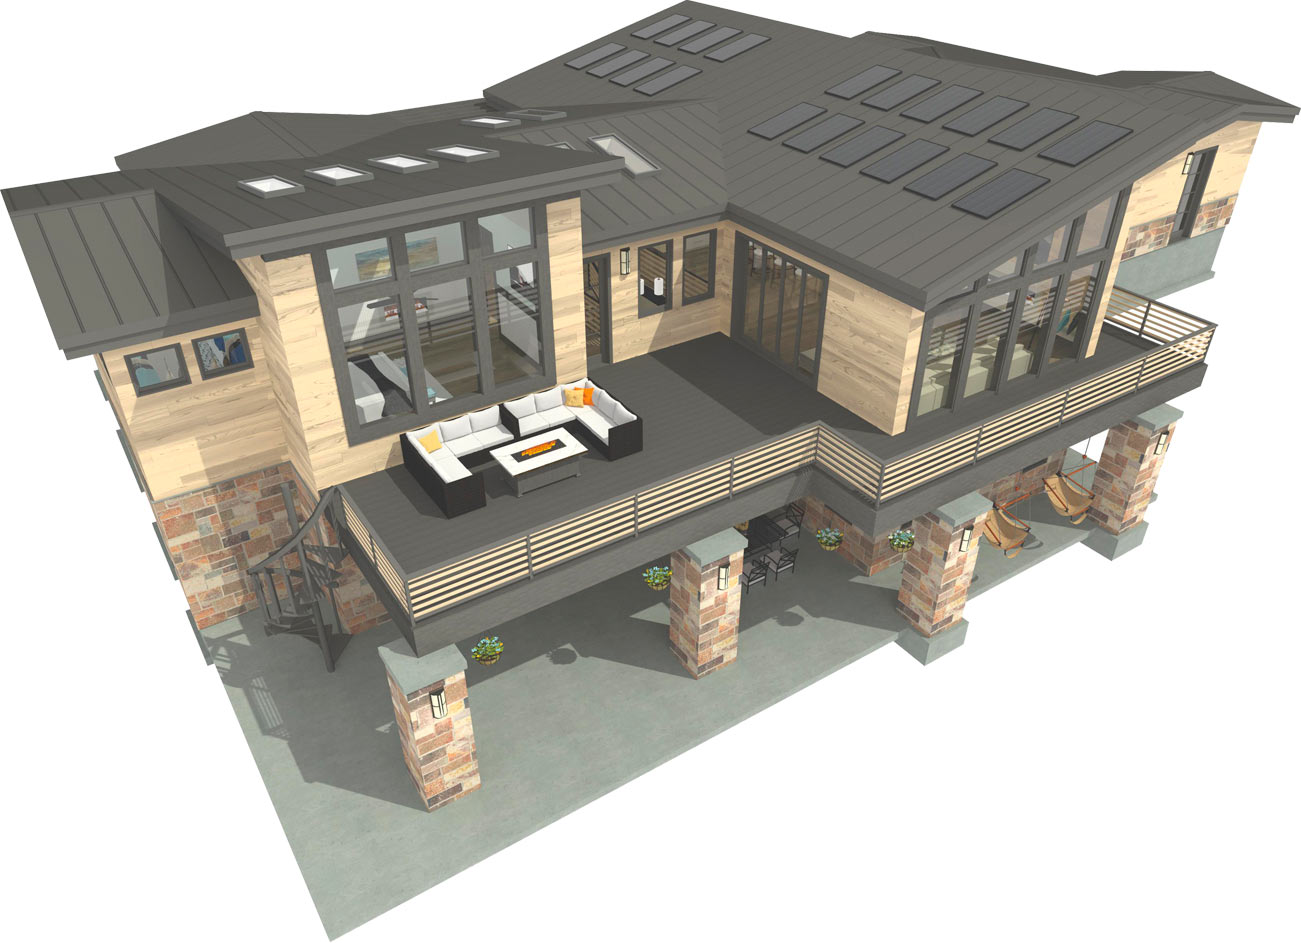 Bachelor View sample plan exterior 3D rendering.